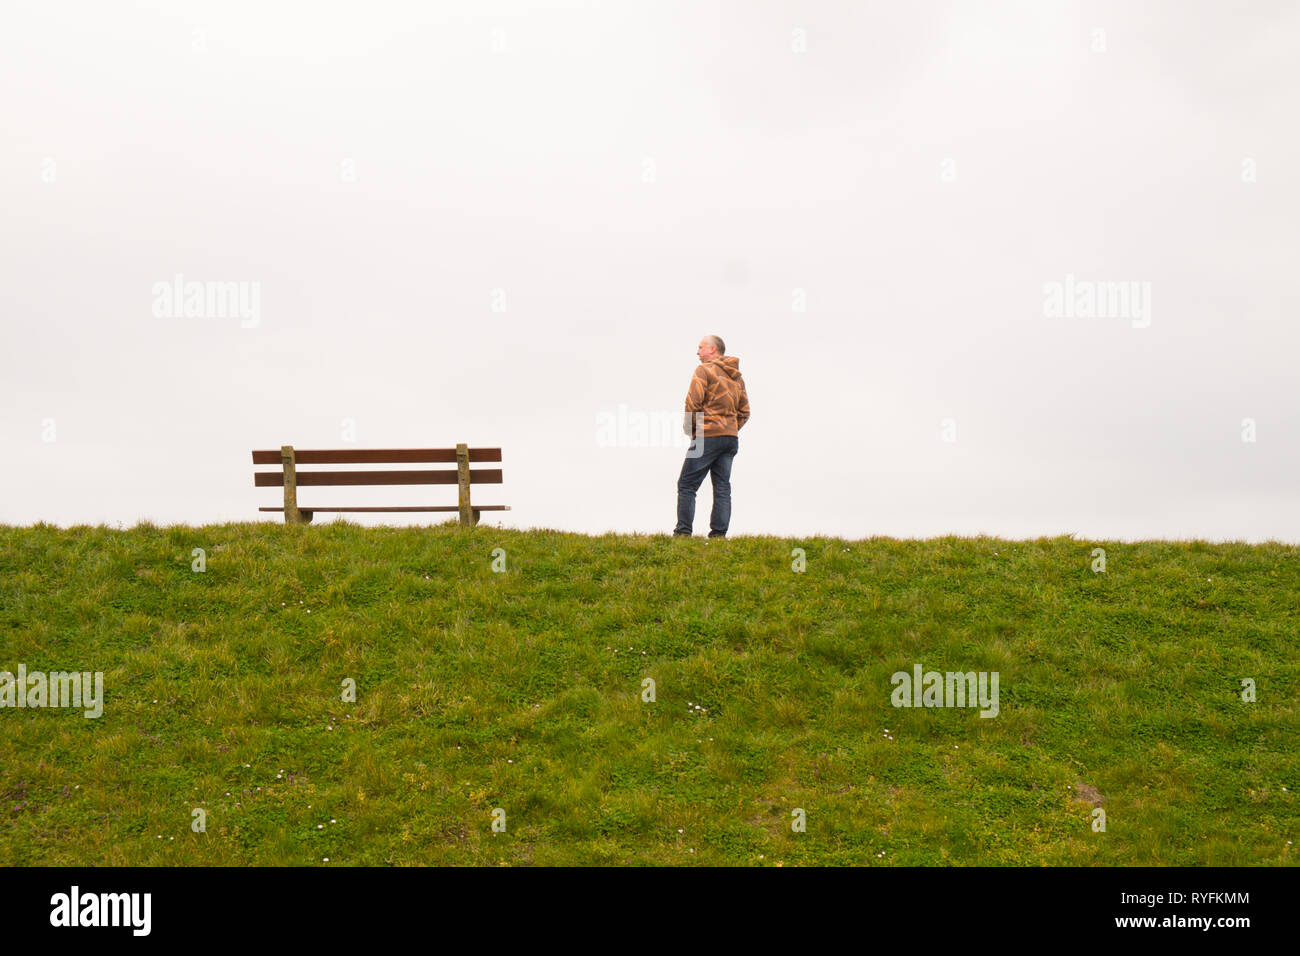 A single person standing next to a single empty wooden bench on the horizon - Stock Image